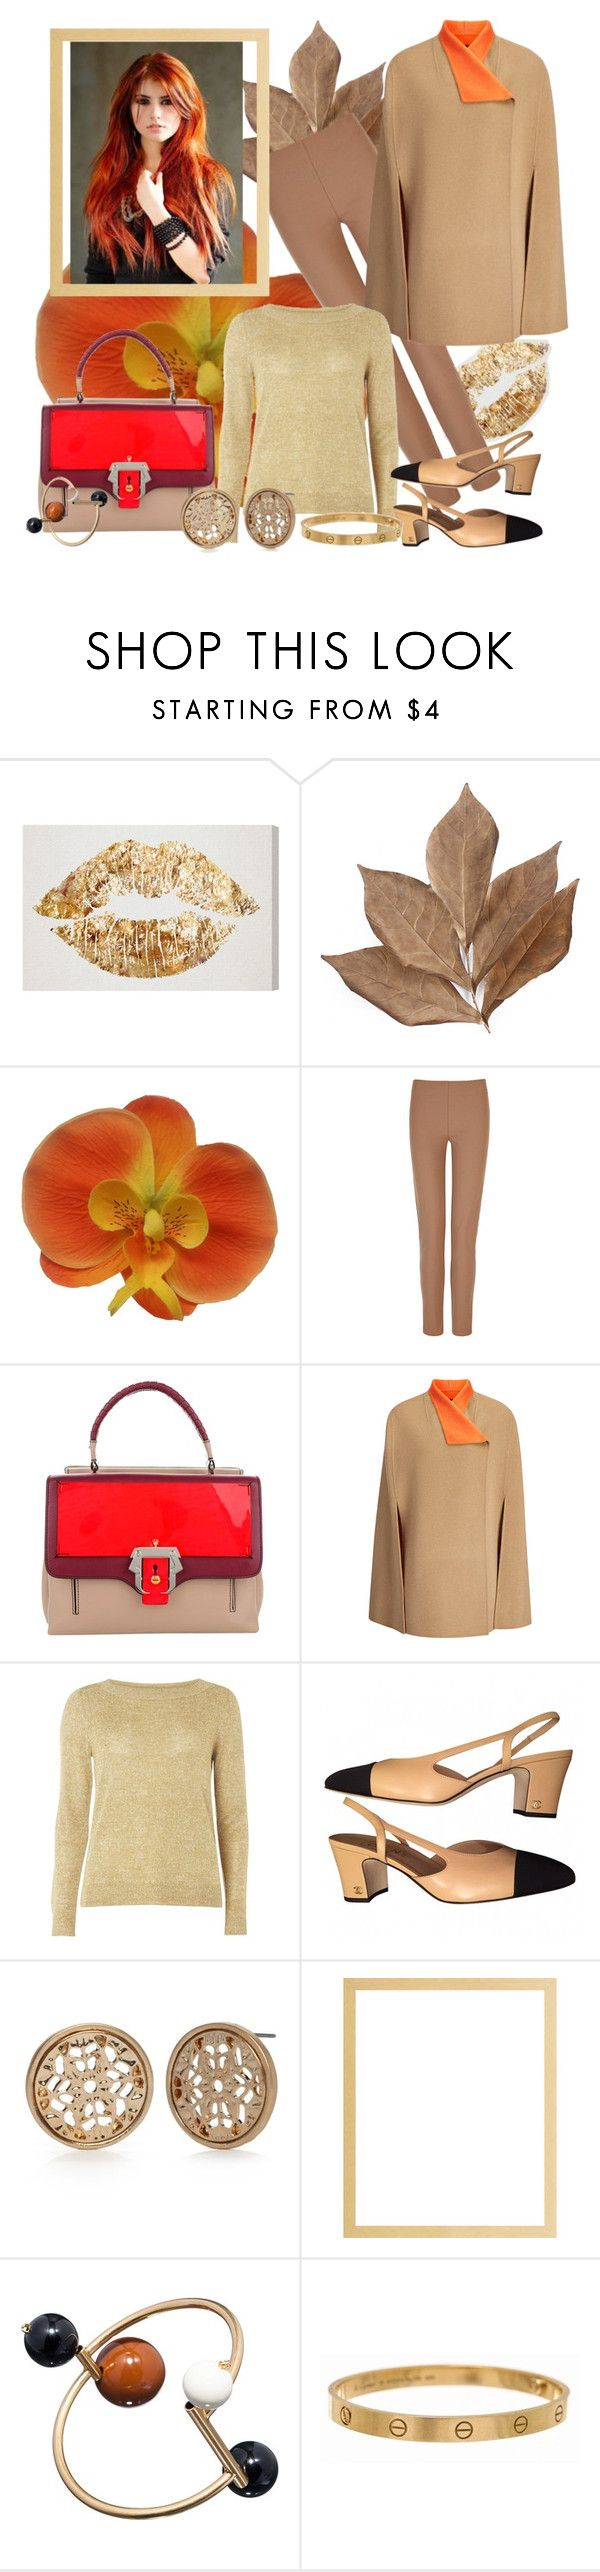 """""""Charlie Brown"""" by blorden ❤ liked on Polyvore featuring Bliss Studio, Joseph, Paula Cademartori, mel, Chanel, Red Camel, Marni and Cartier"""